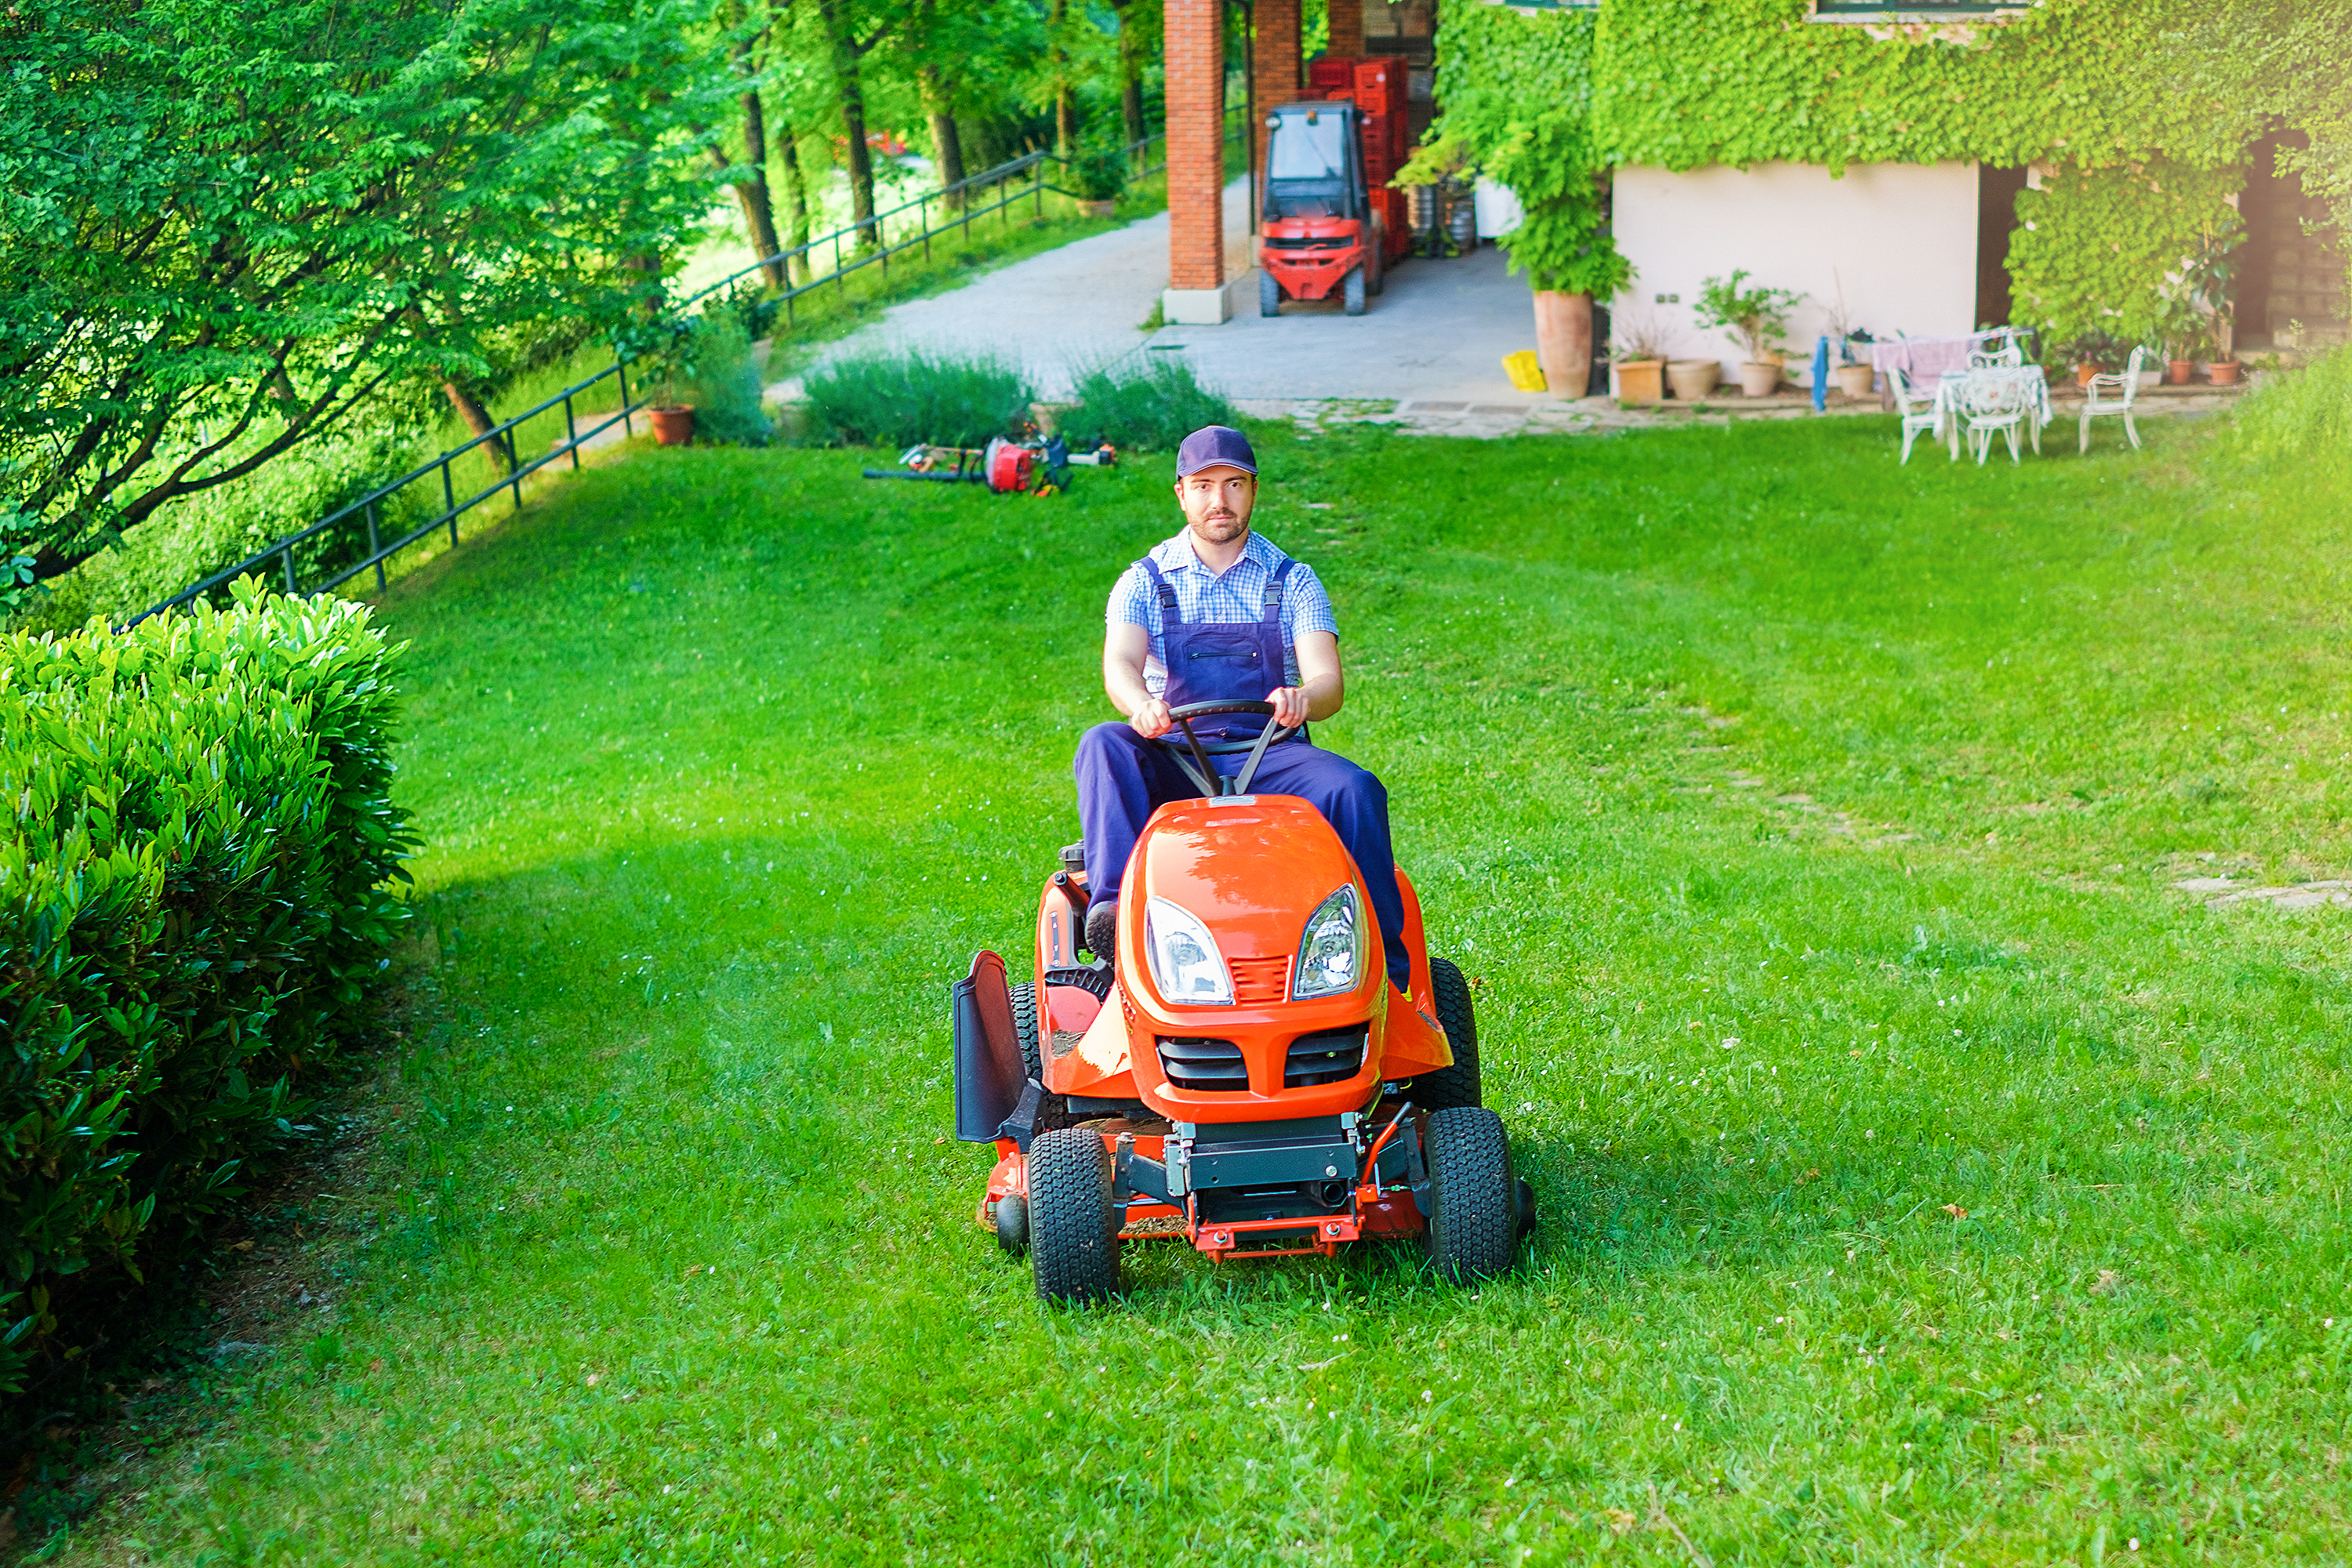 Why Does My Mower Stop Running After 20 Minutes? | Home Guides | SF Gate